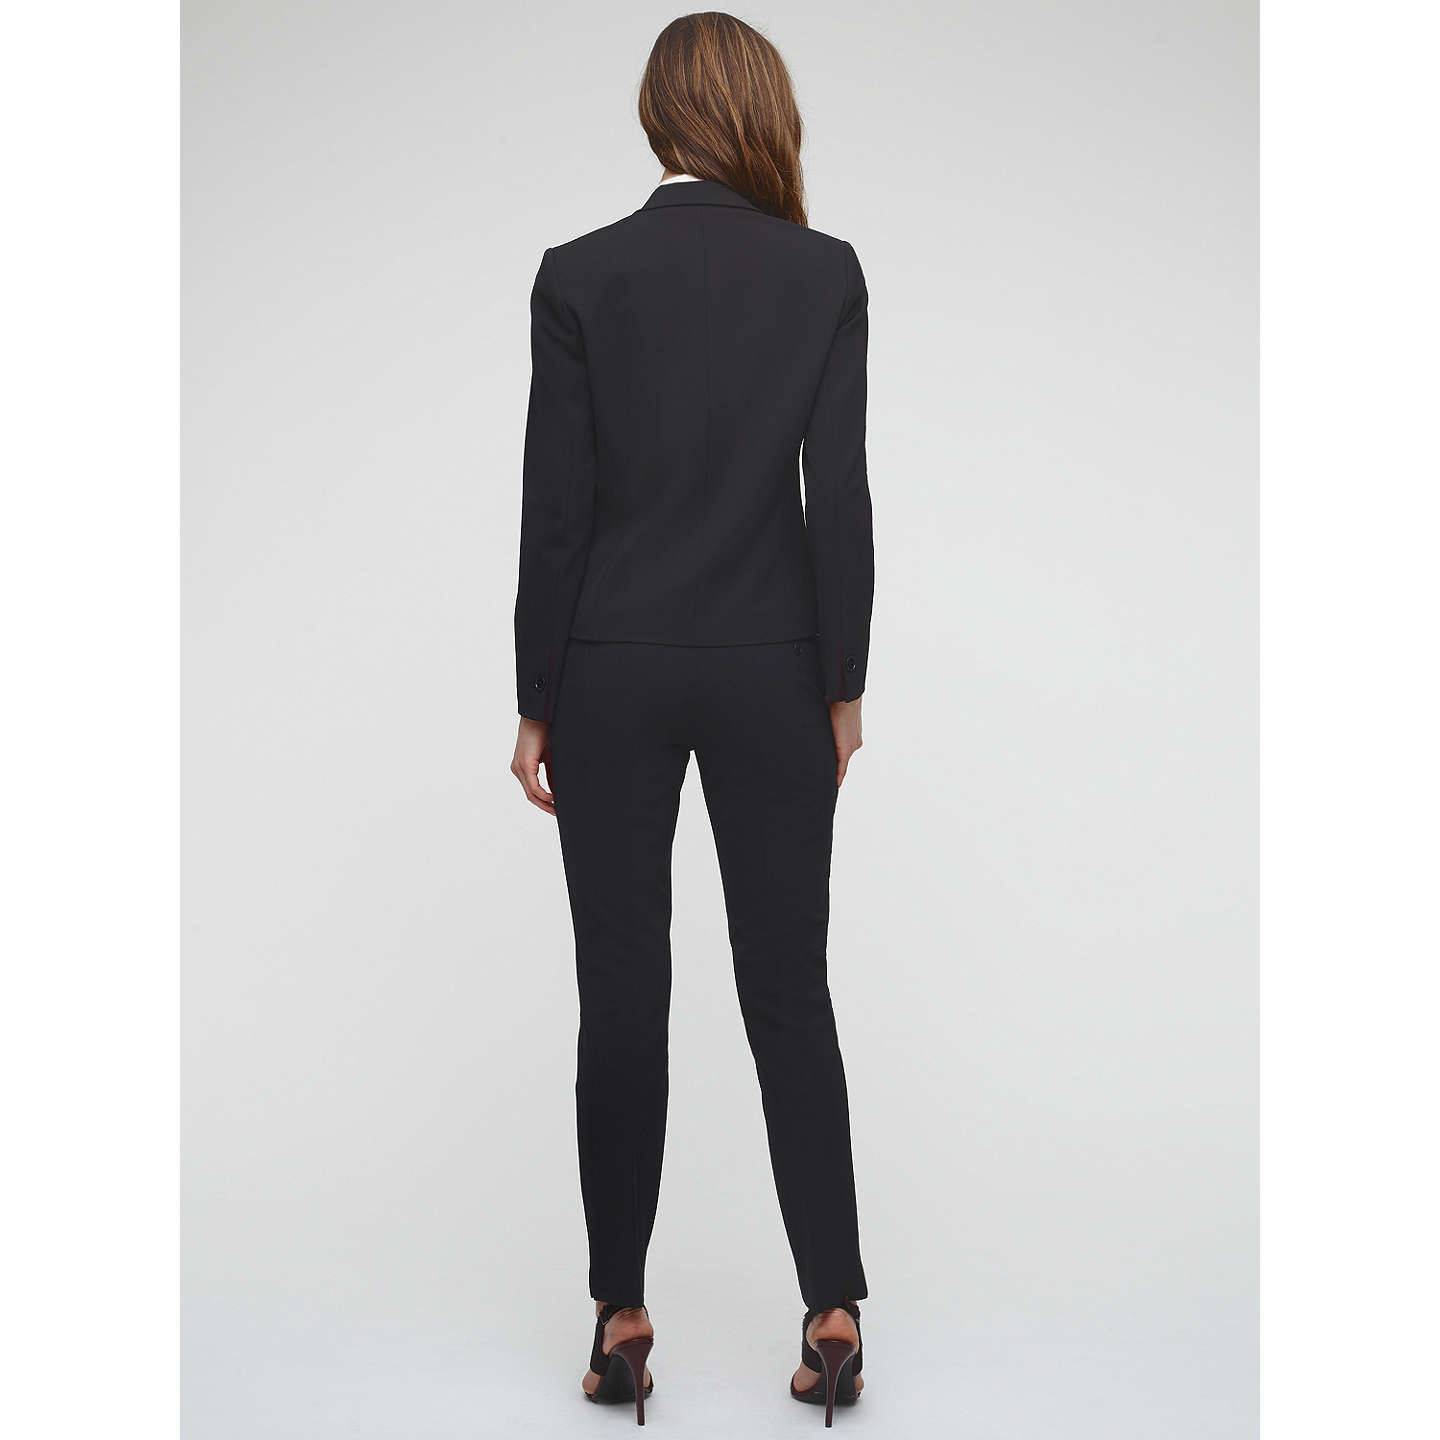 BuyJigsaw New Paris One Button Jacket, Black, 8 Online at johnlewis.com